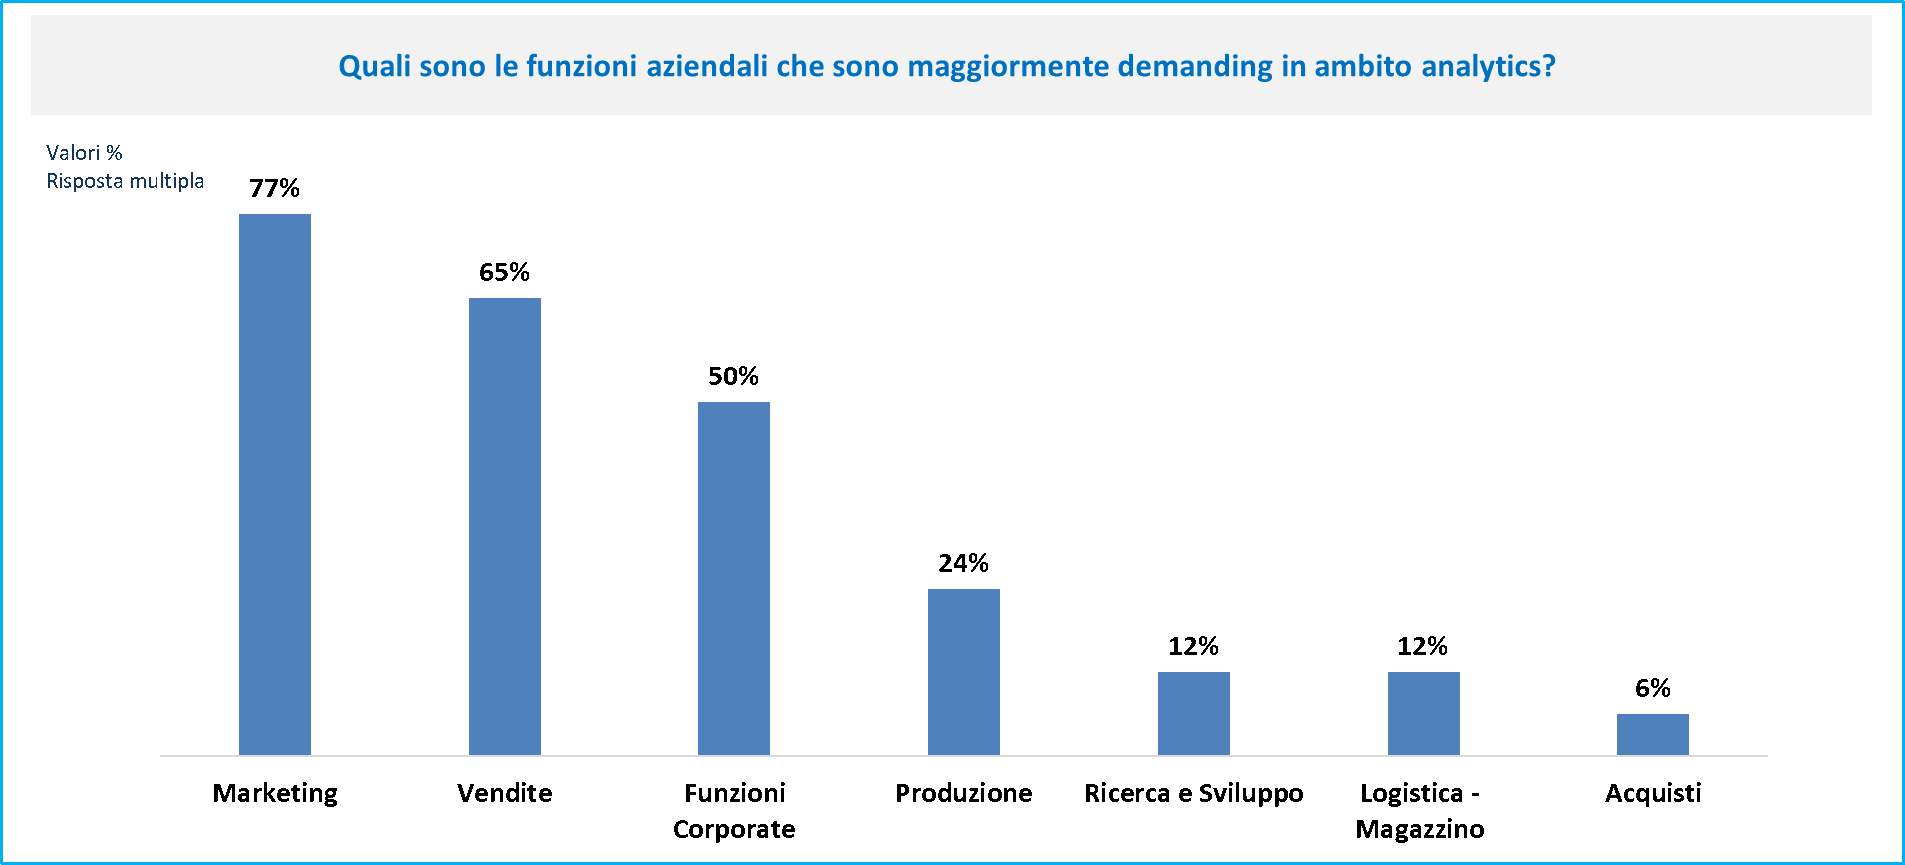 Machine Learning - Funzioni aziendali demanding in ambito analytics - Fonte: NetConsulting cube, CIO Survey 2018